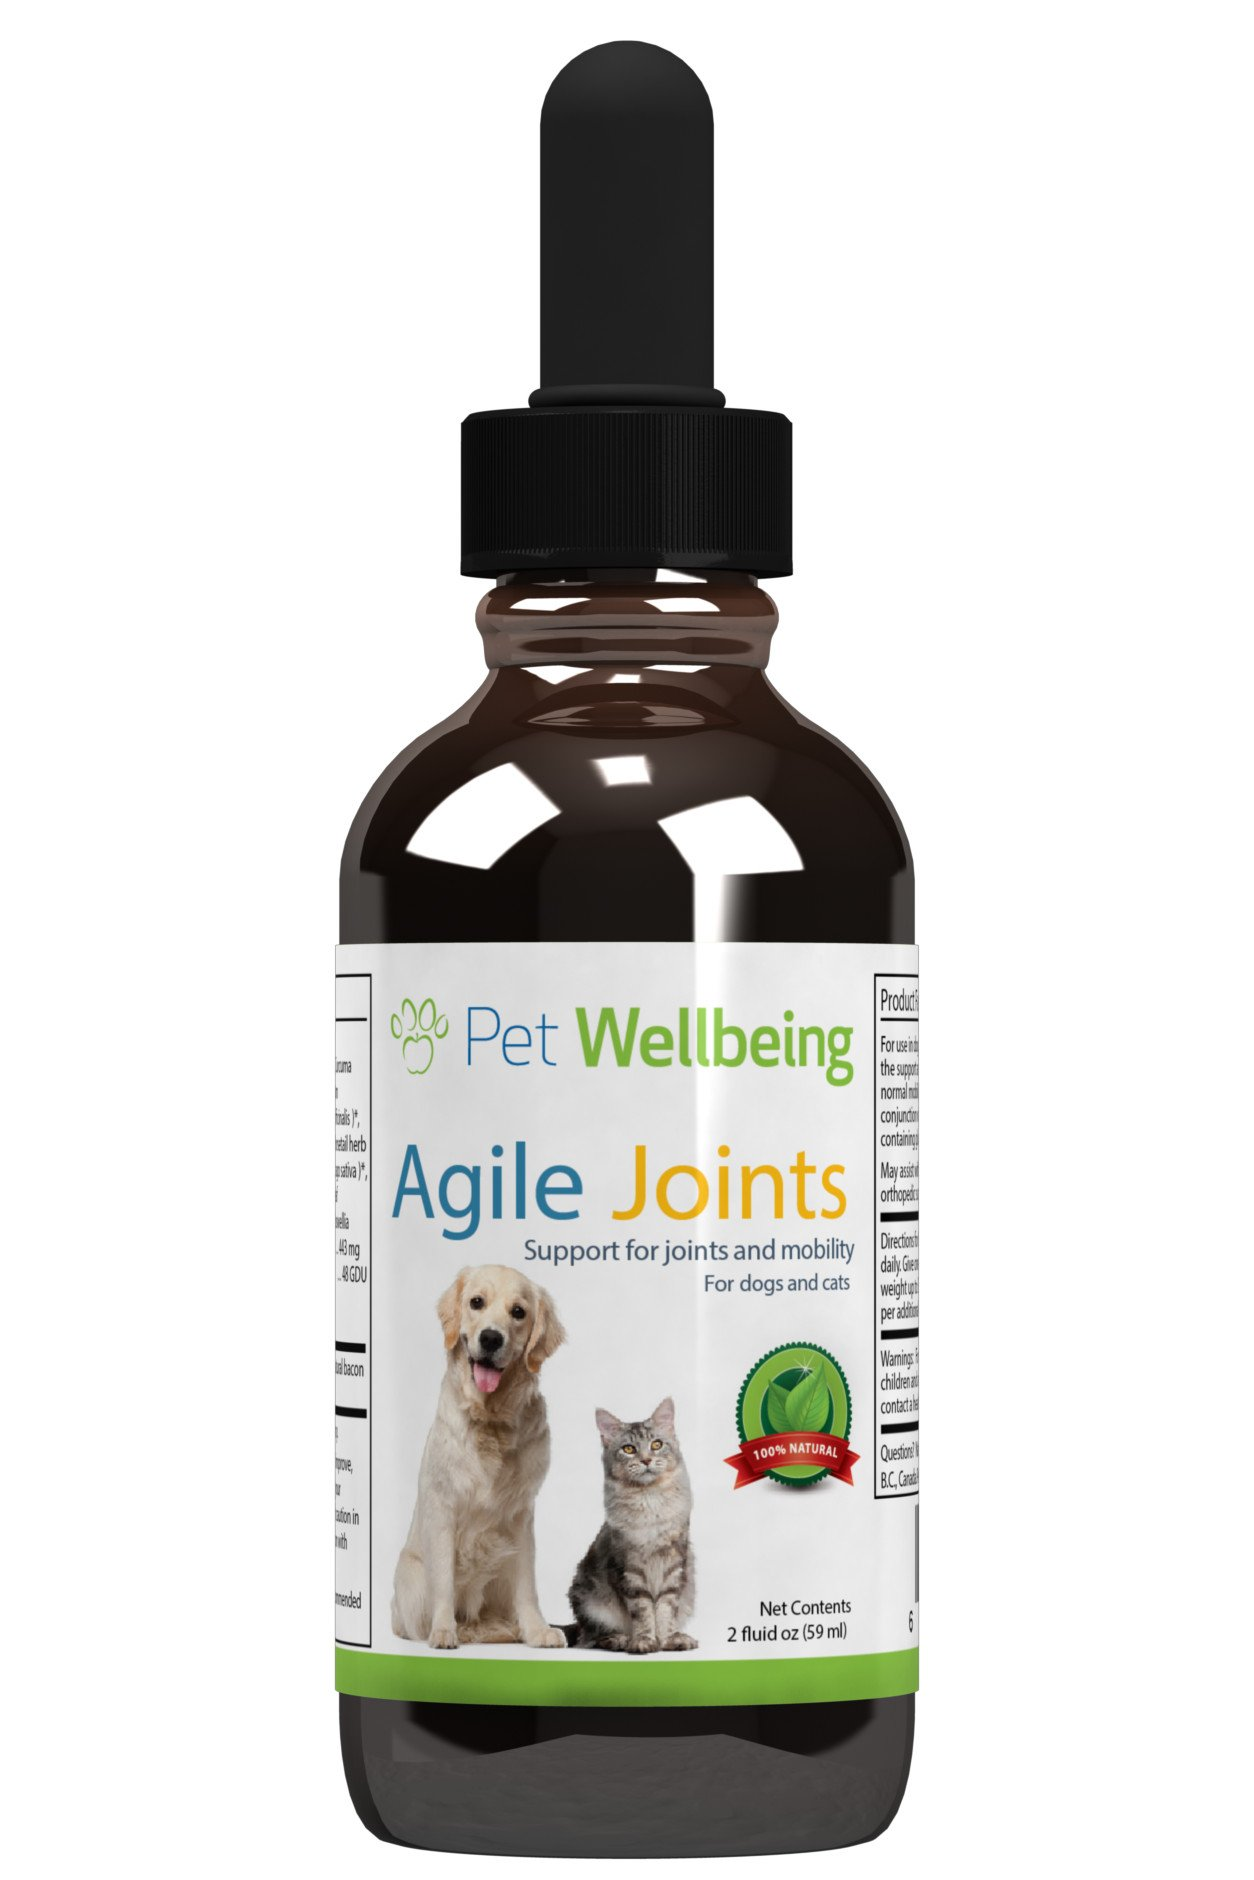 Pet Wellbeing - Agile Joints for Dogs - Canine Arthritis Hip and Joint Support - 2 oz (59ml)